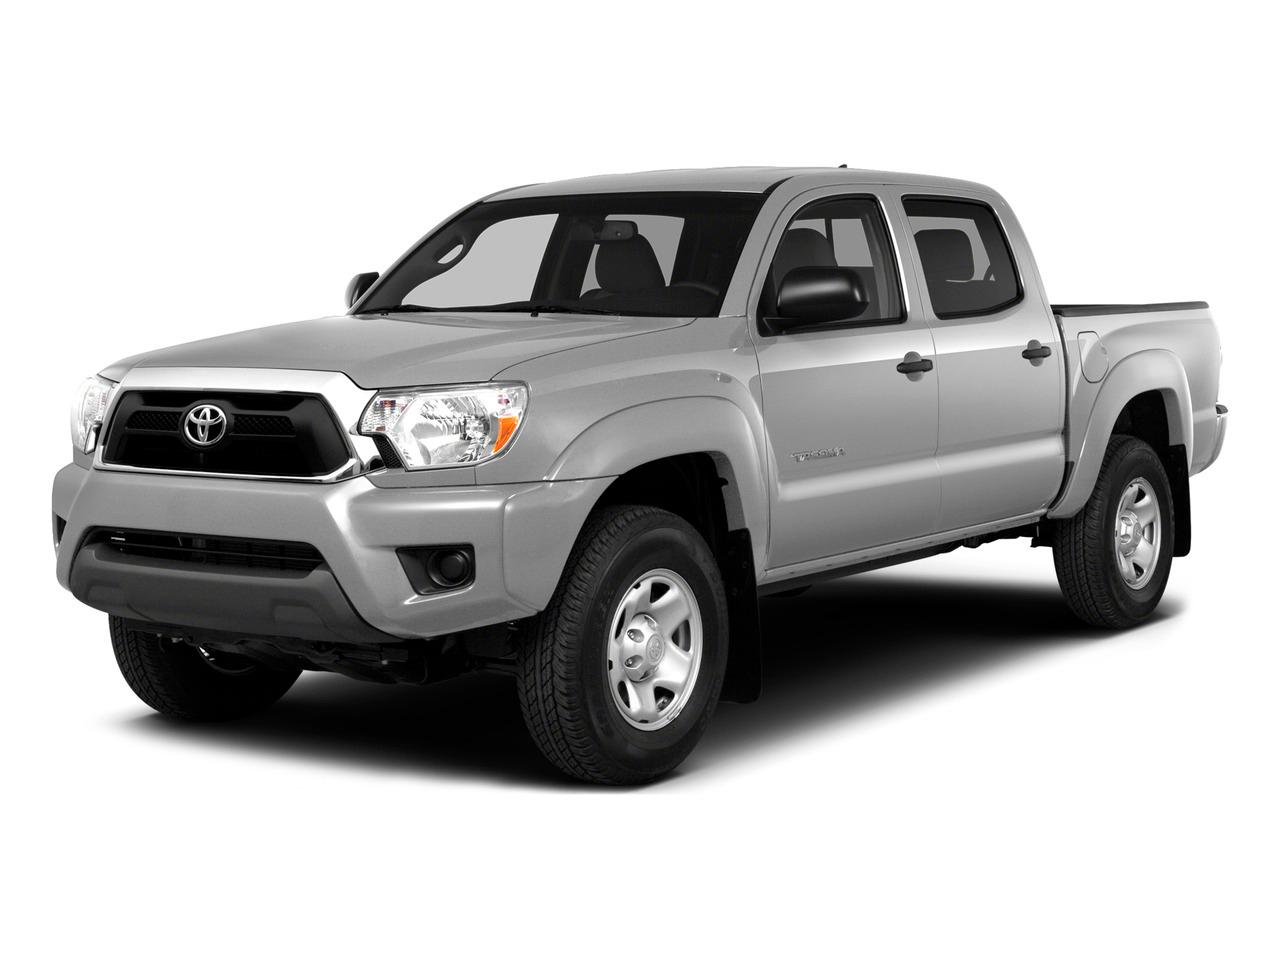 2015 Toyota Tacoma Vehicle Photo in Portland, OR 97225